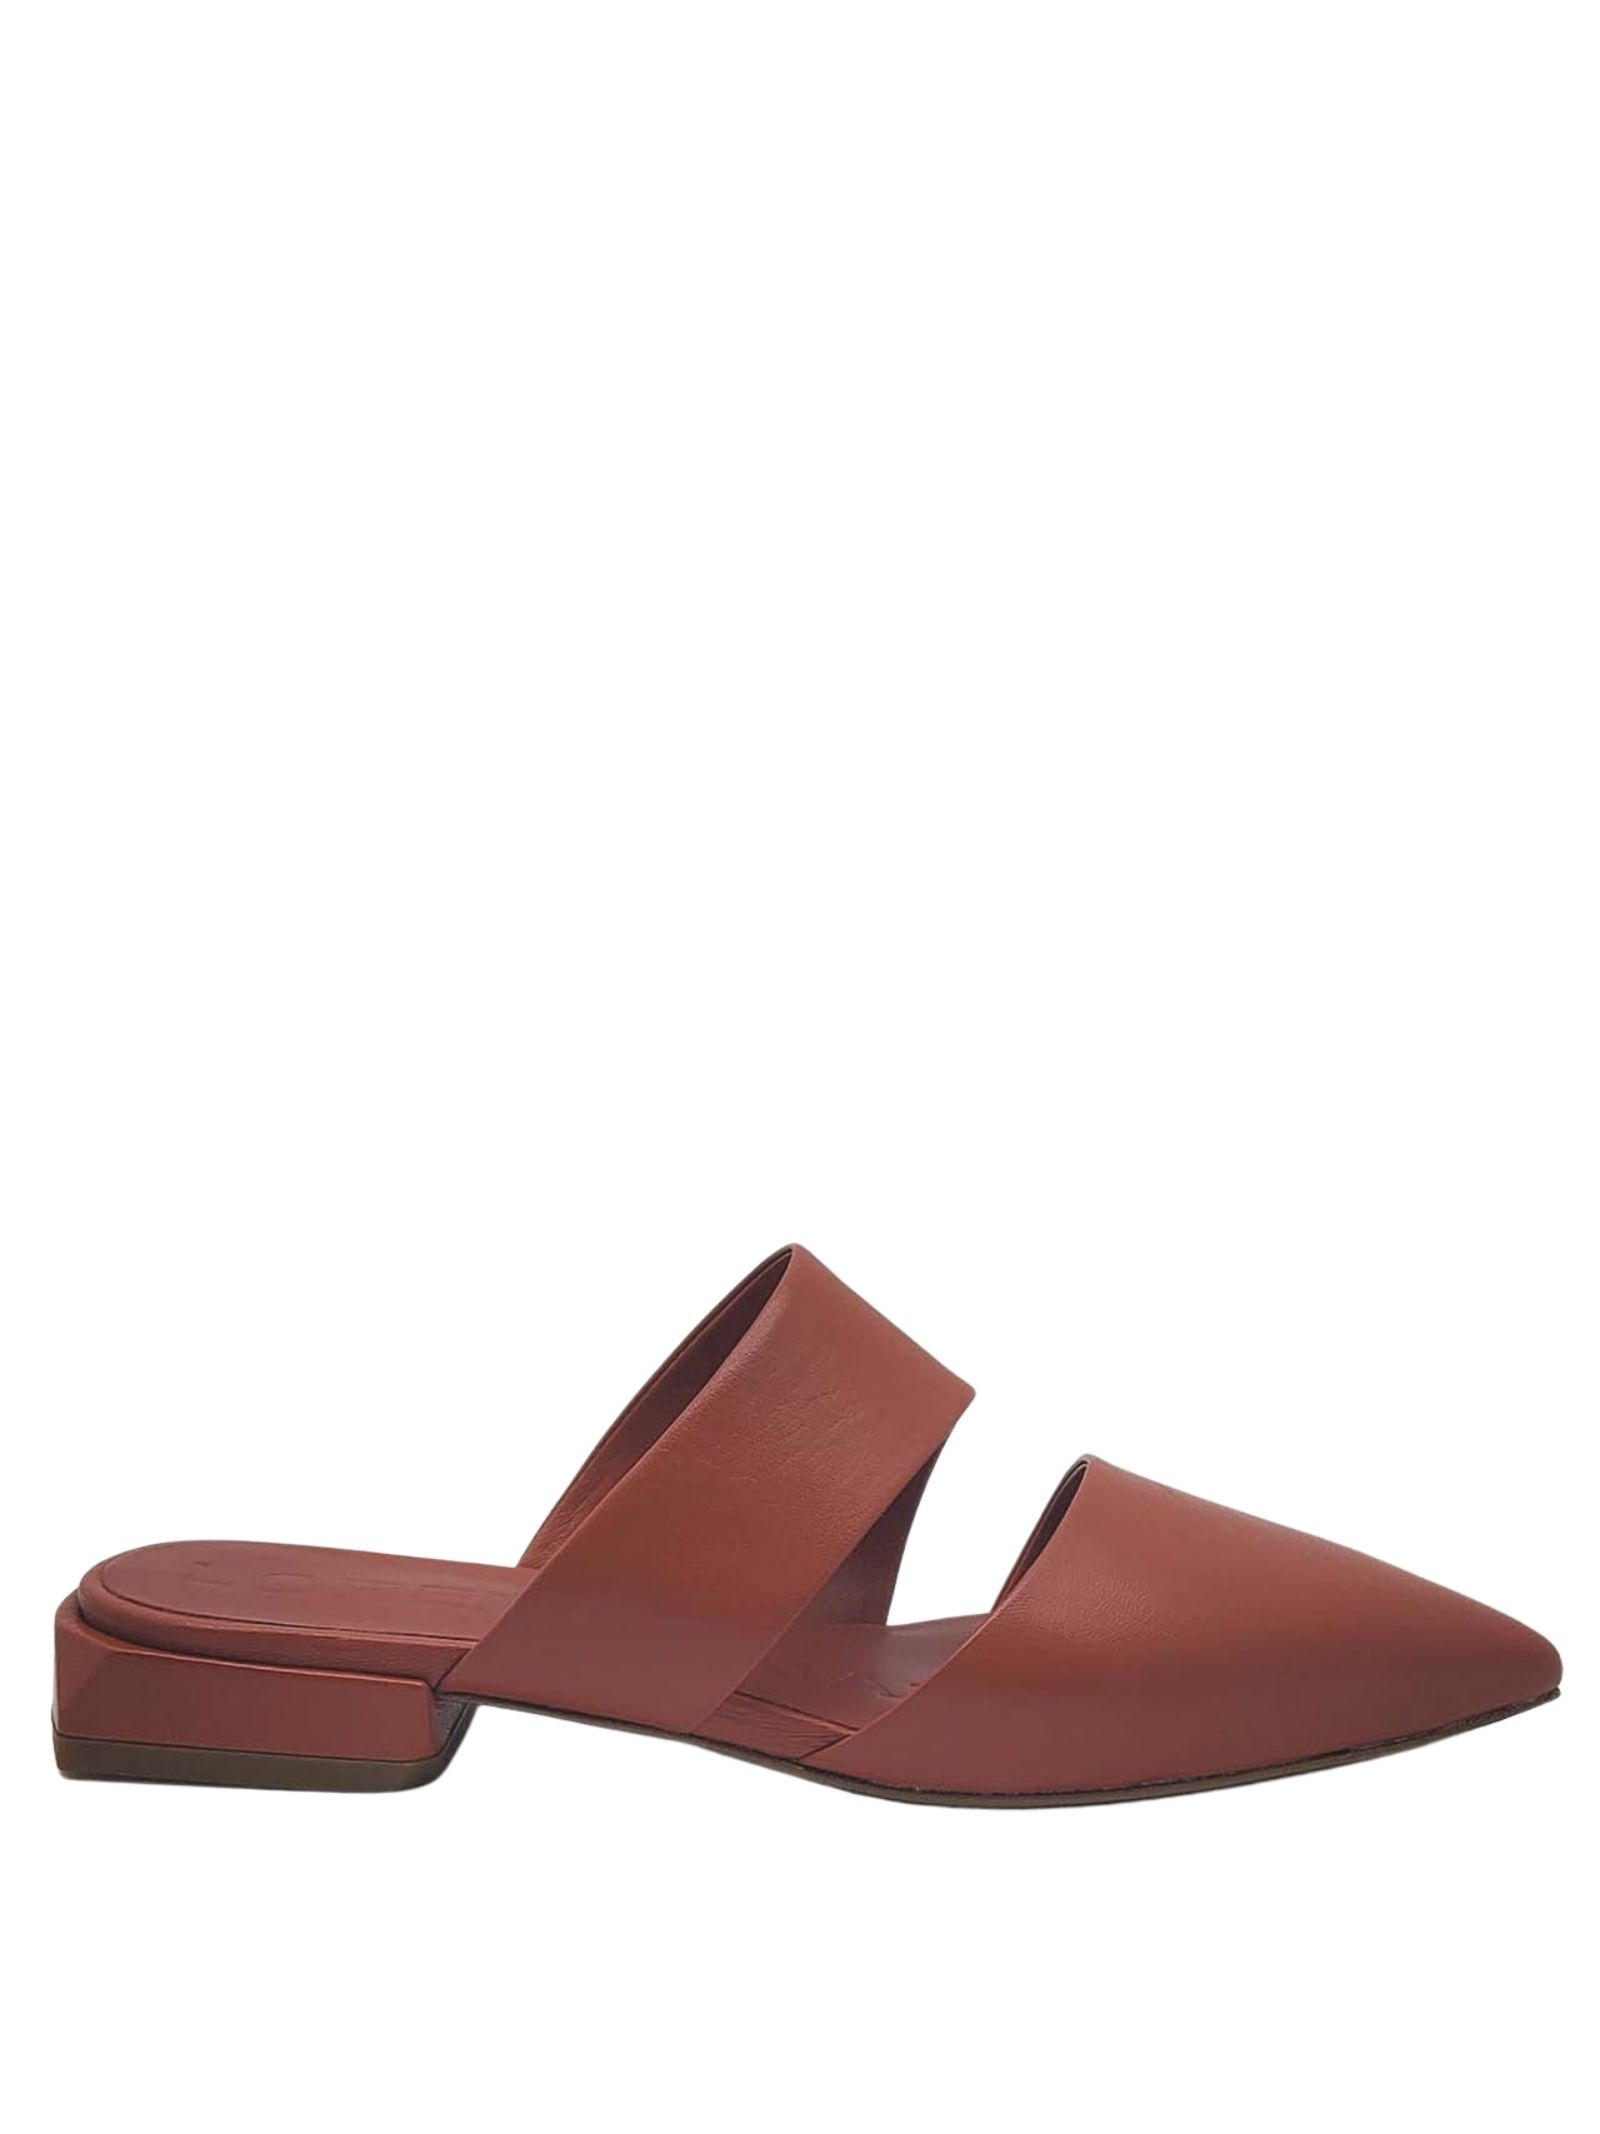 Women's Shoes Mule Sandals in Dark Leather with Double Band Lorenzo Mari | Sandals | PURITANI030